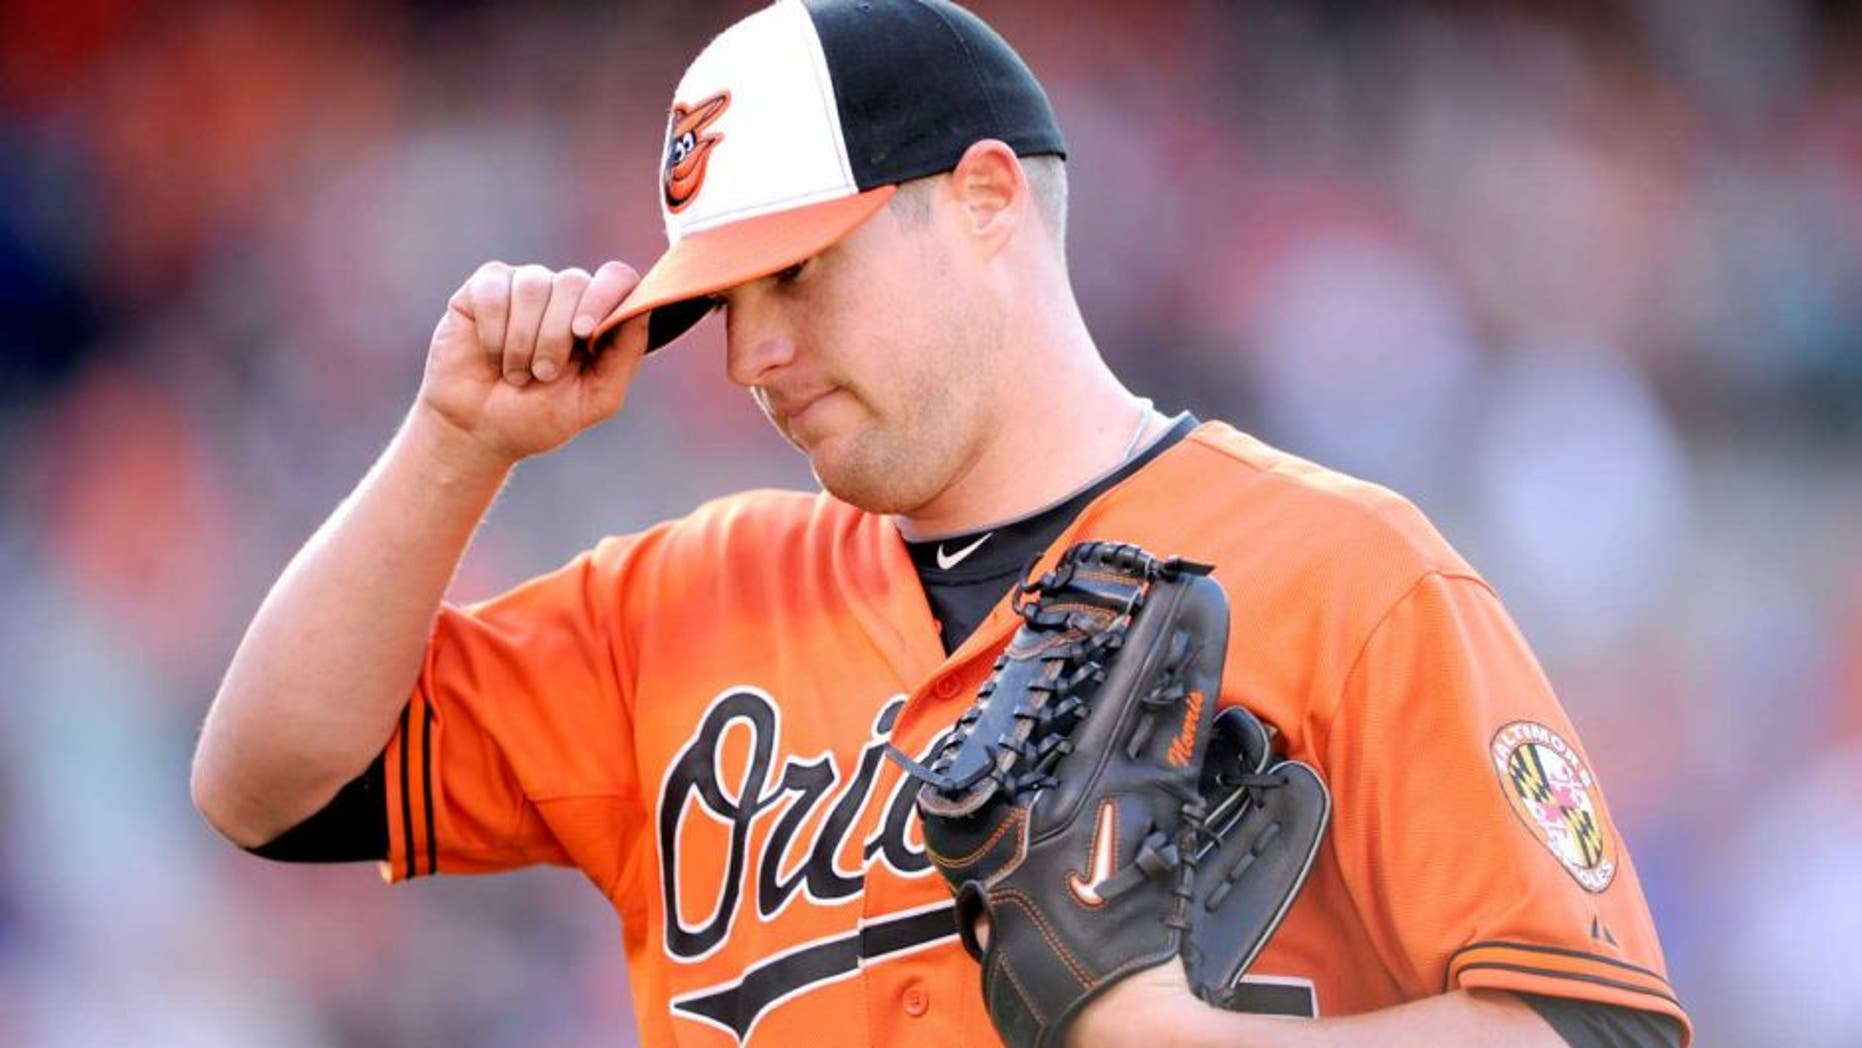 Baltimore Orioles starting pitcher Bud Norris touches the brim of his hat as he walks back to the dugout after he was pulled from the baseball game against the Toronto Blue Jays during the seventh inning Saturday, June 14, 2014, in Baltimore. The Orioles won 3-2. (AP Photo/Nick Wass)